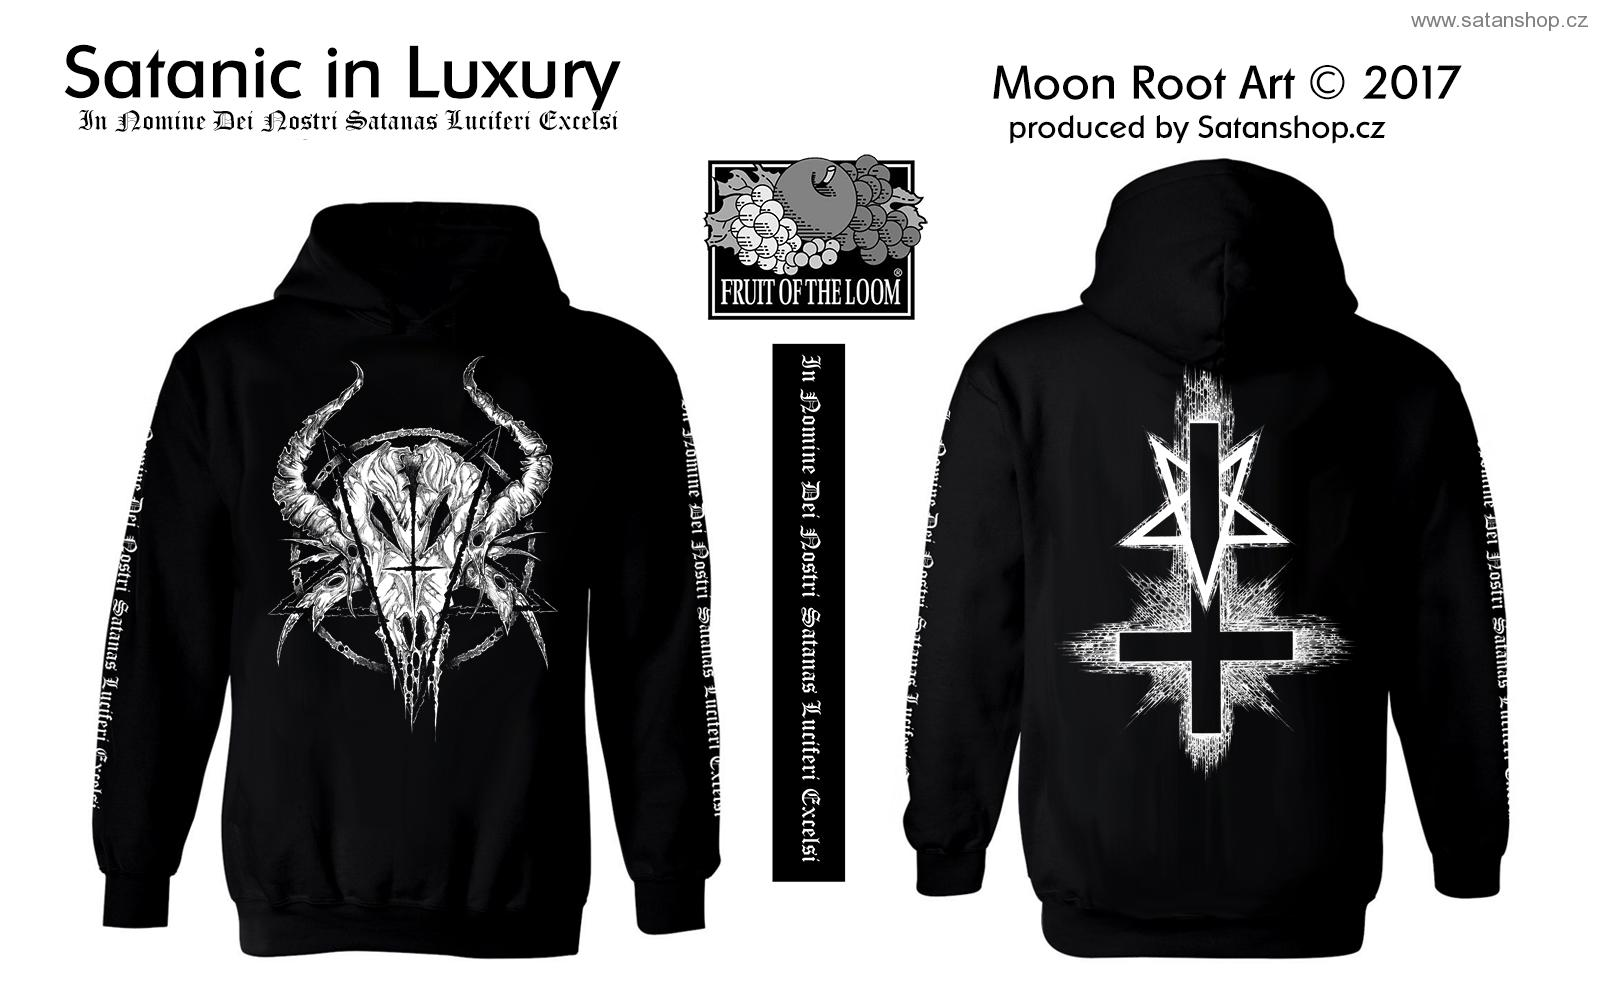 Mikina - Satanic in Luxury - MoonRoot Art